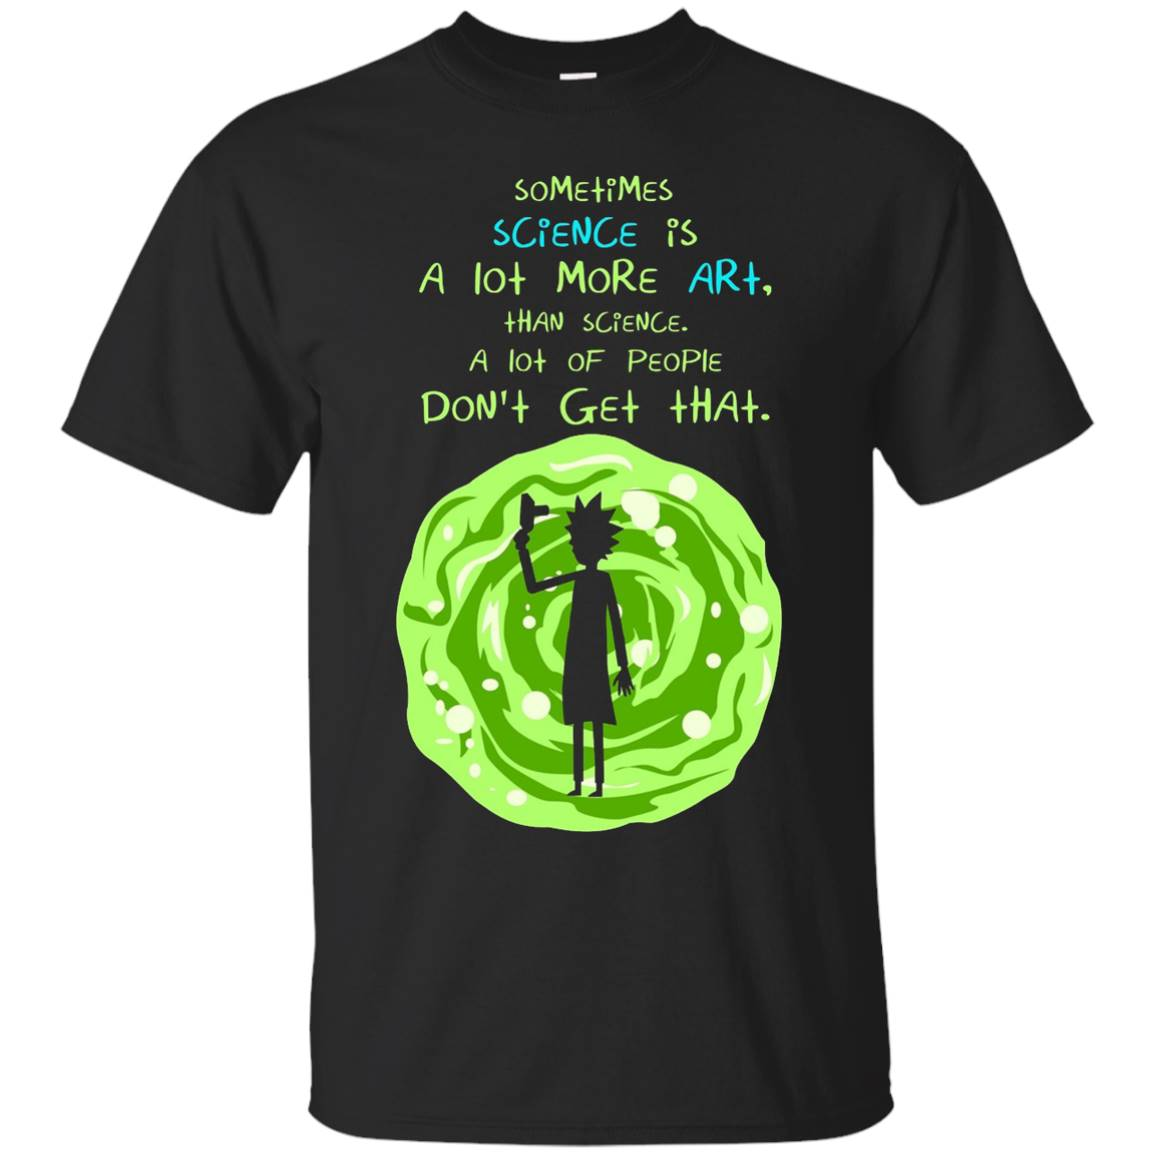 Sometimes science is a lot more art, than science. t shirt – T-Shirt